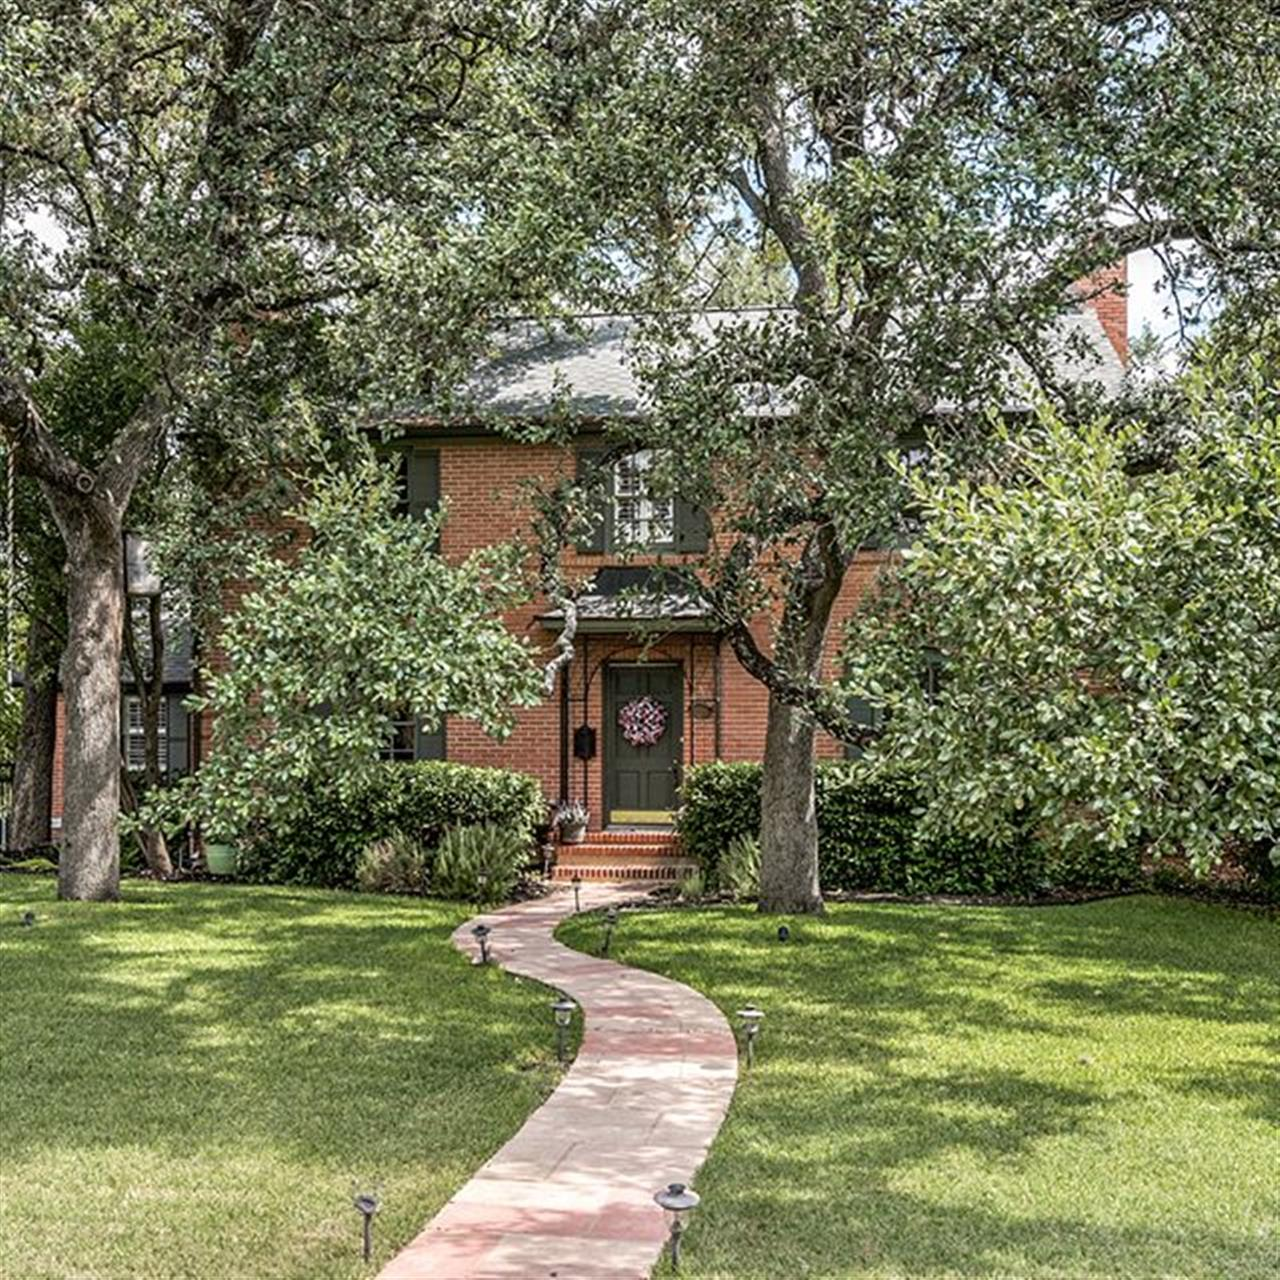 Luxury of The Day: 249 E. Terra Alta Dr. in #AlamoHeights, listed by @ellentherealtor. A remarkable renovation has been completed at this Atlee B. Ayres home on over half an acre with 4 bedrooms and 3.5 baths.